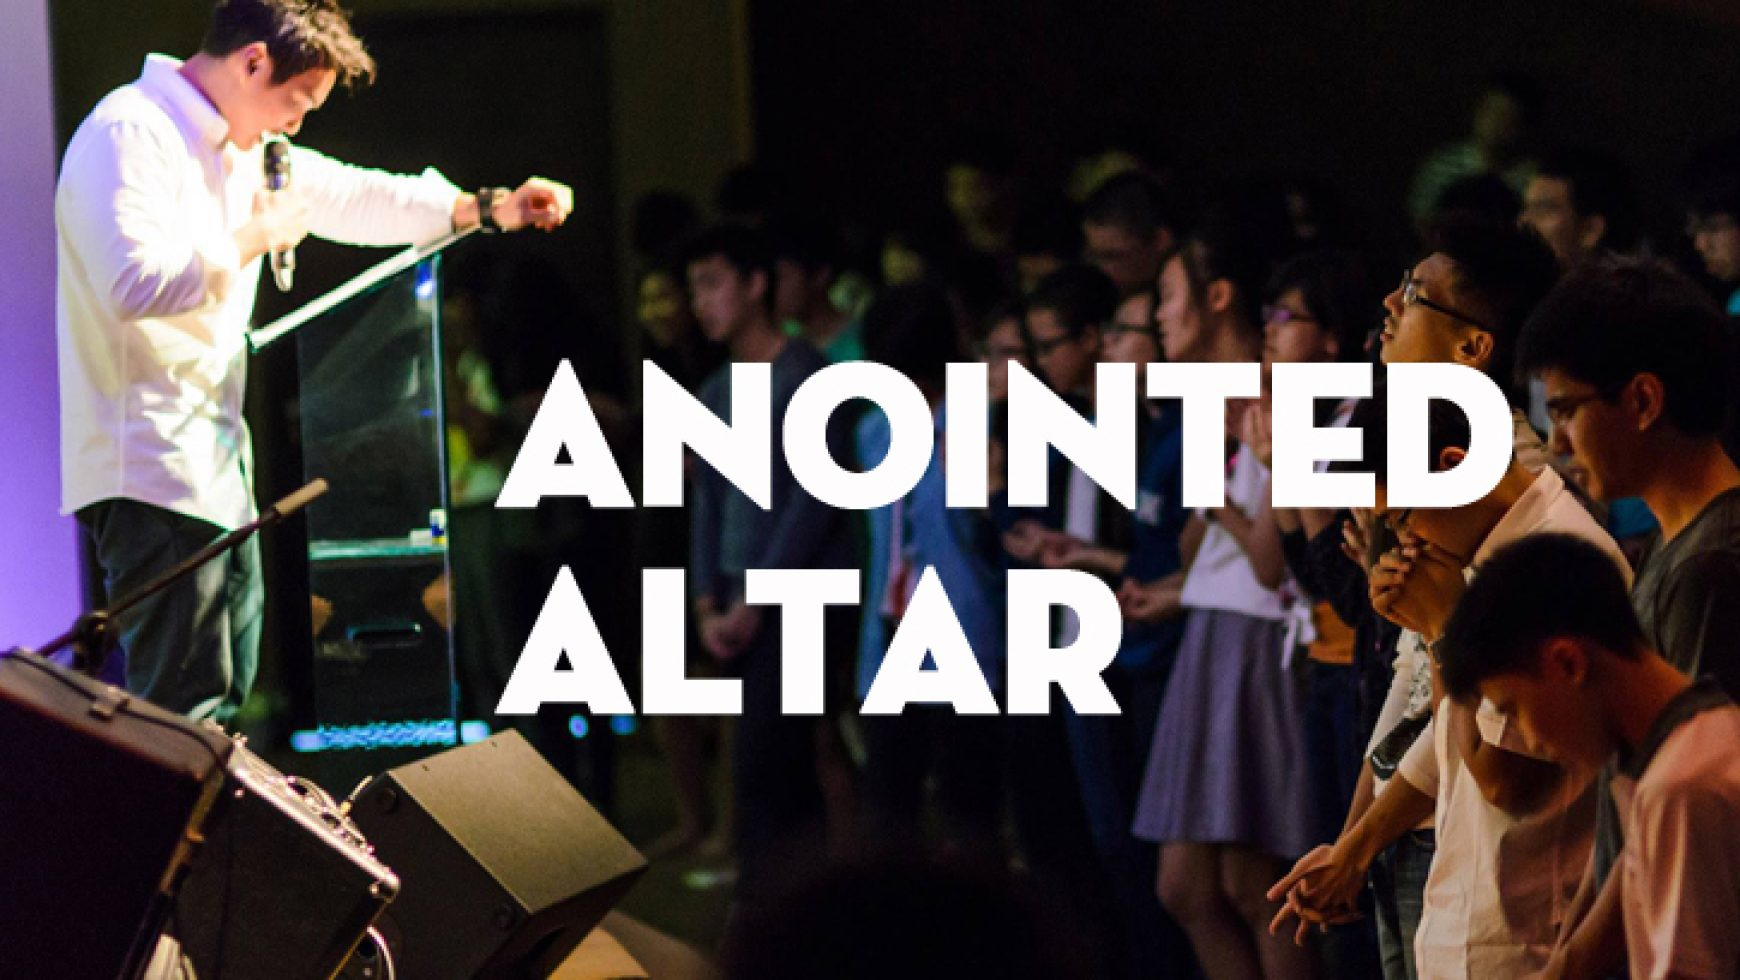 Anointed Altar